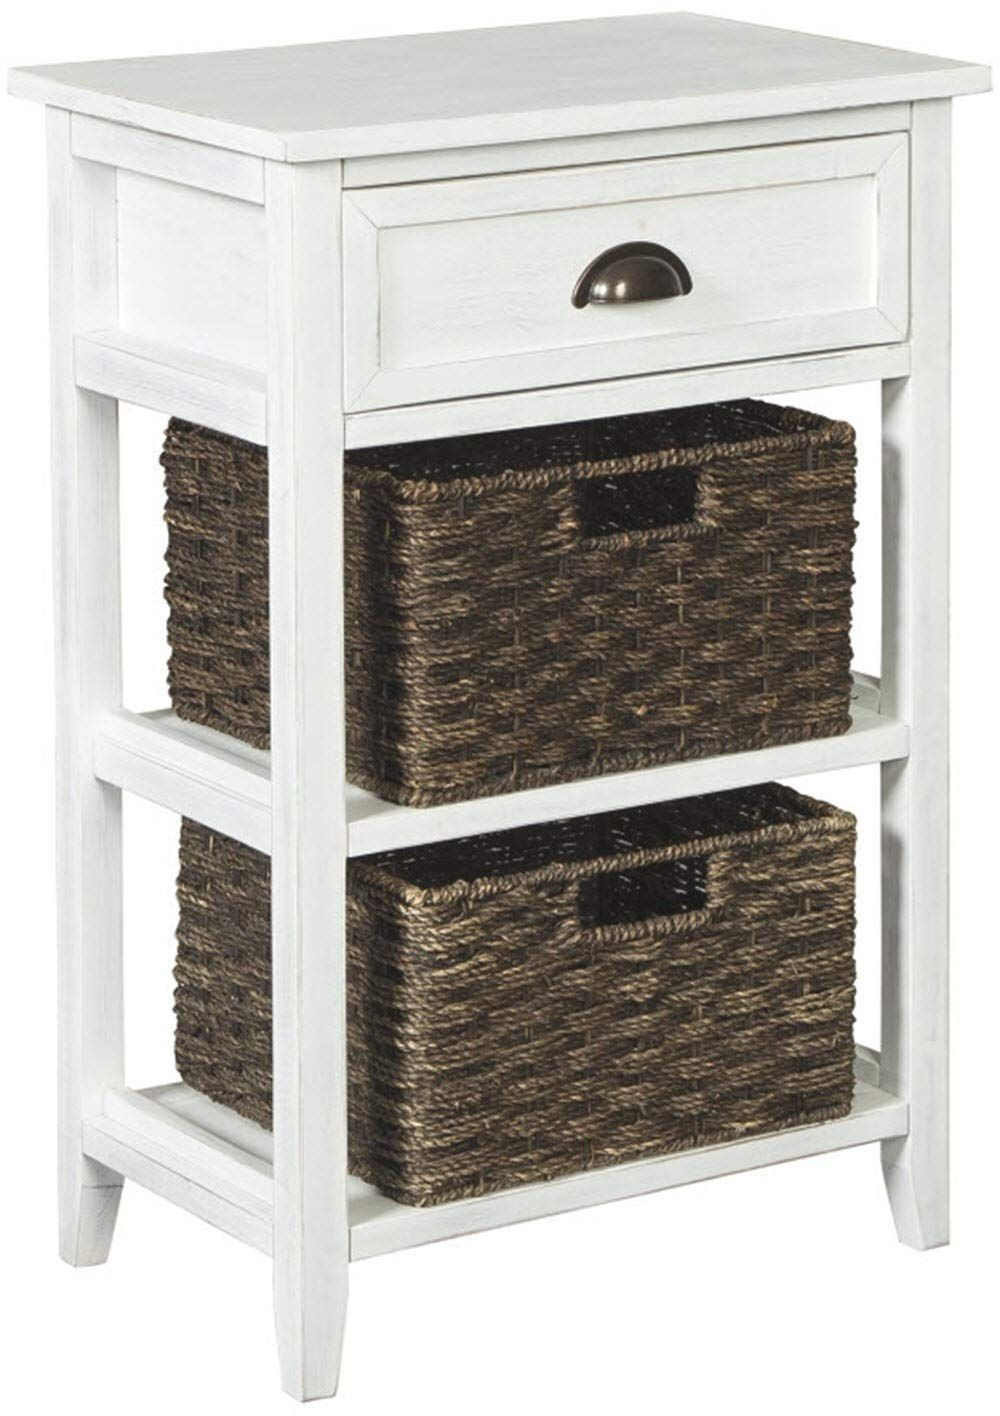 ashley furniture signature design oslember storage accent table antique white includes brown removable baskets finish hope you actually like our quoizel tiffany lamps cast